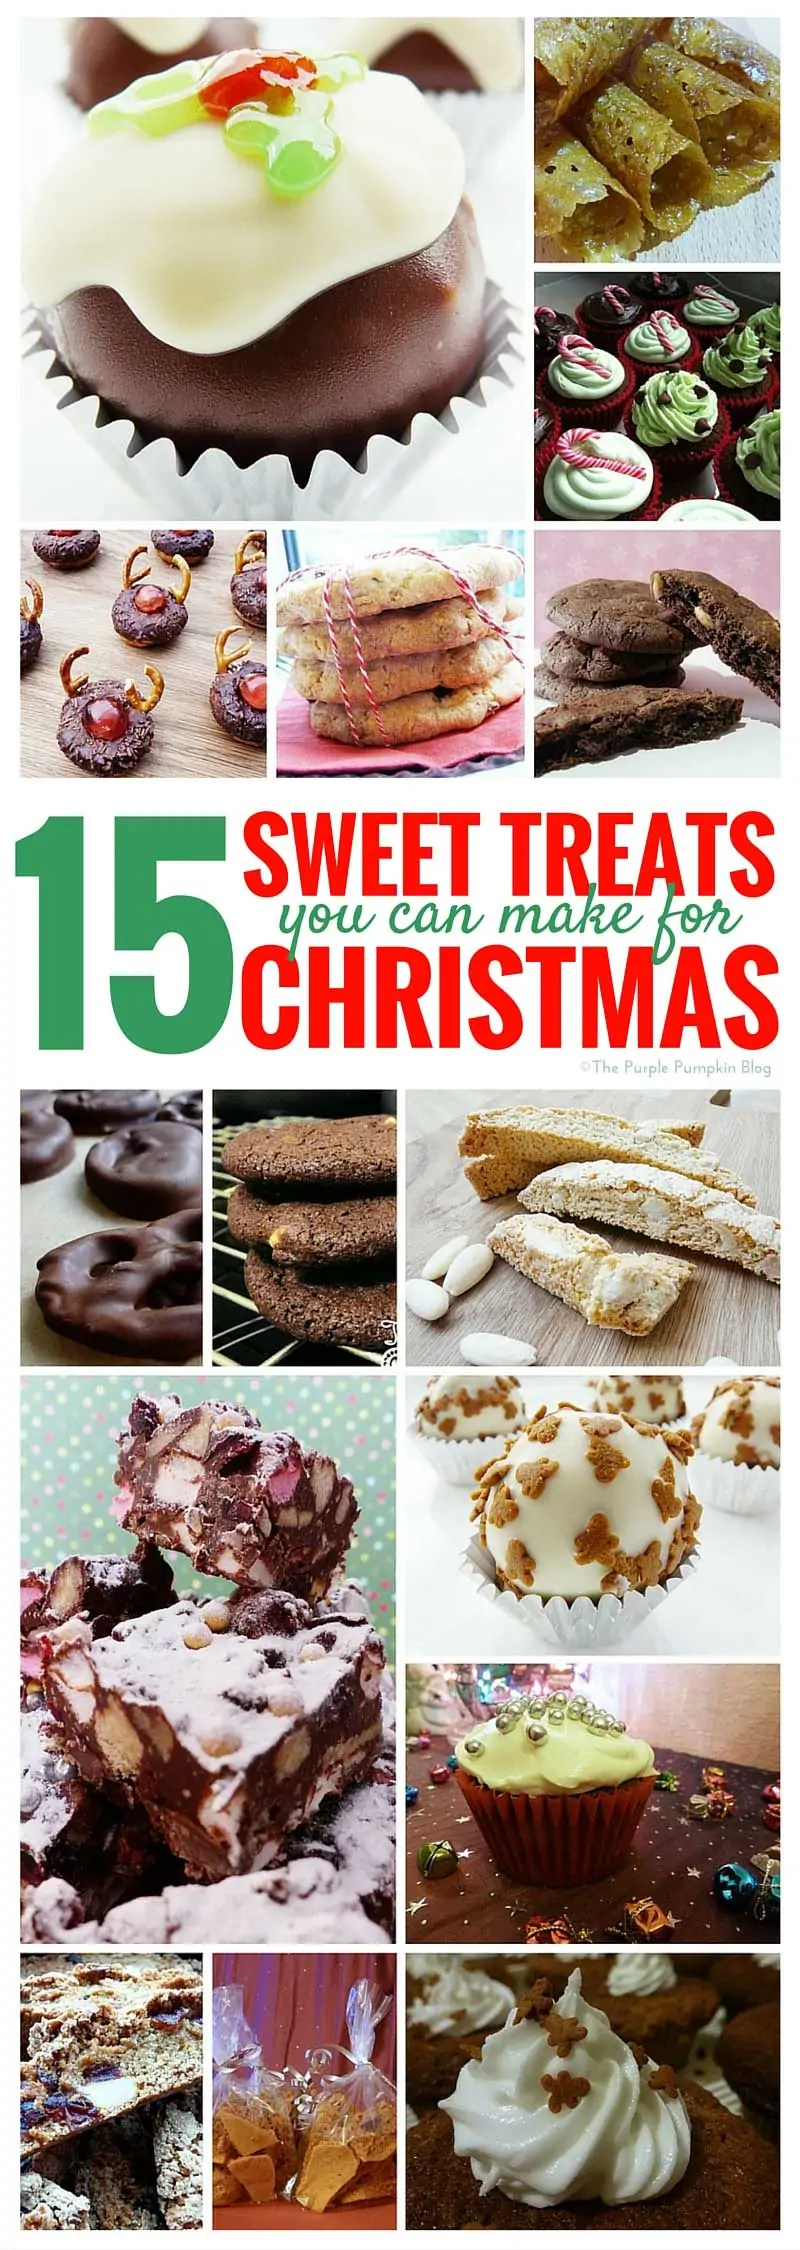 15 Sweet Treats You Can Make For Christmas